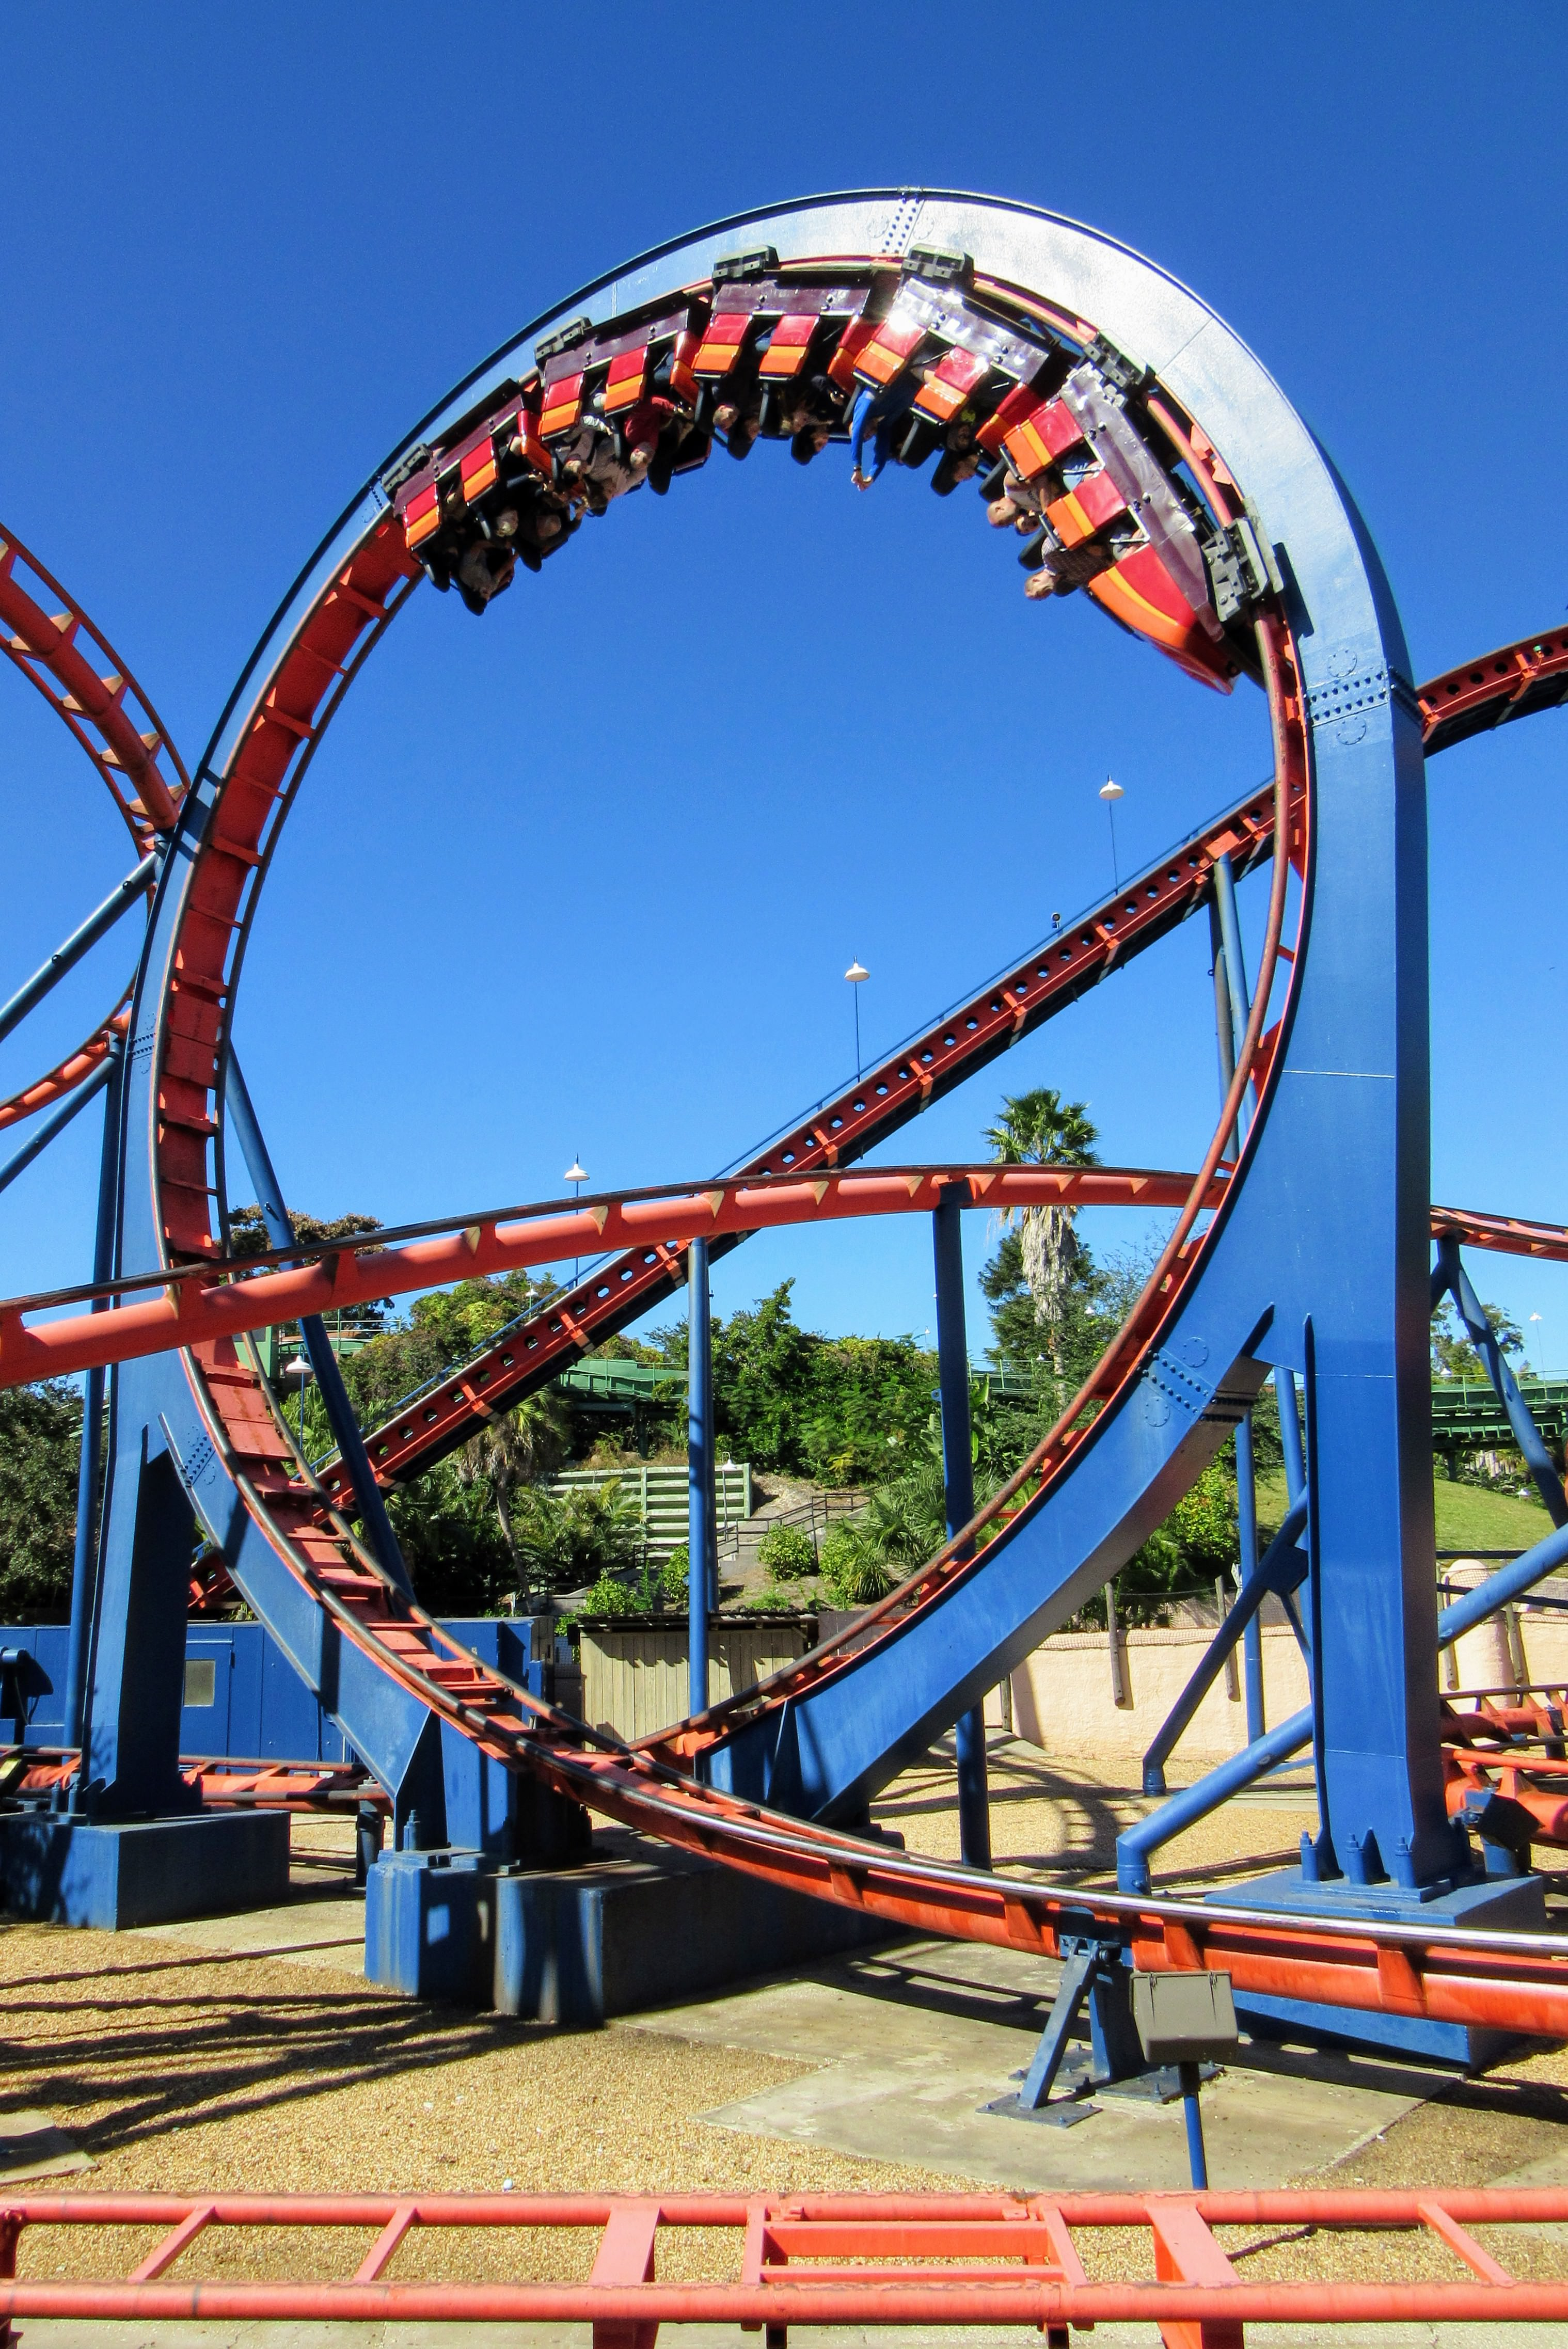 Visiting busch gardens tampa bay a review tips my - Busch gardens tampa roller coasters ...